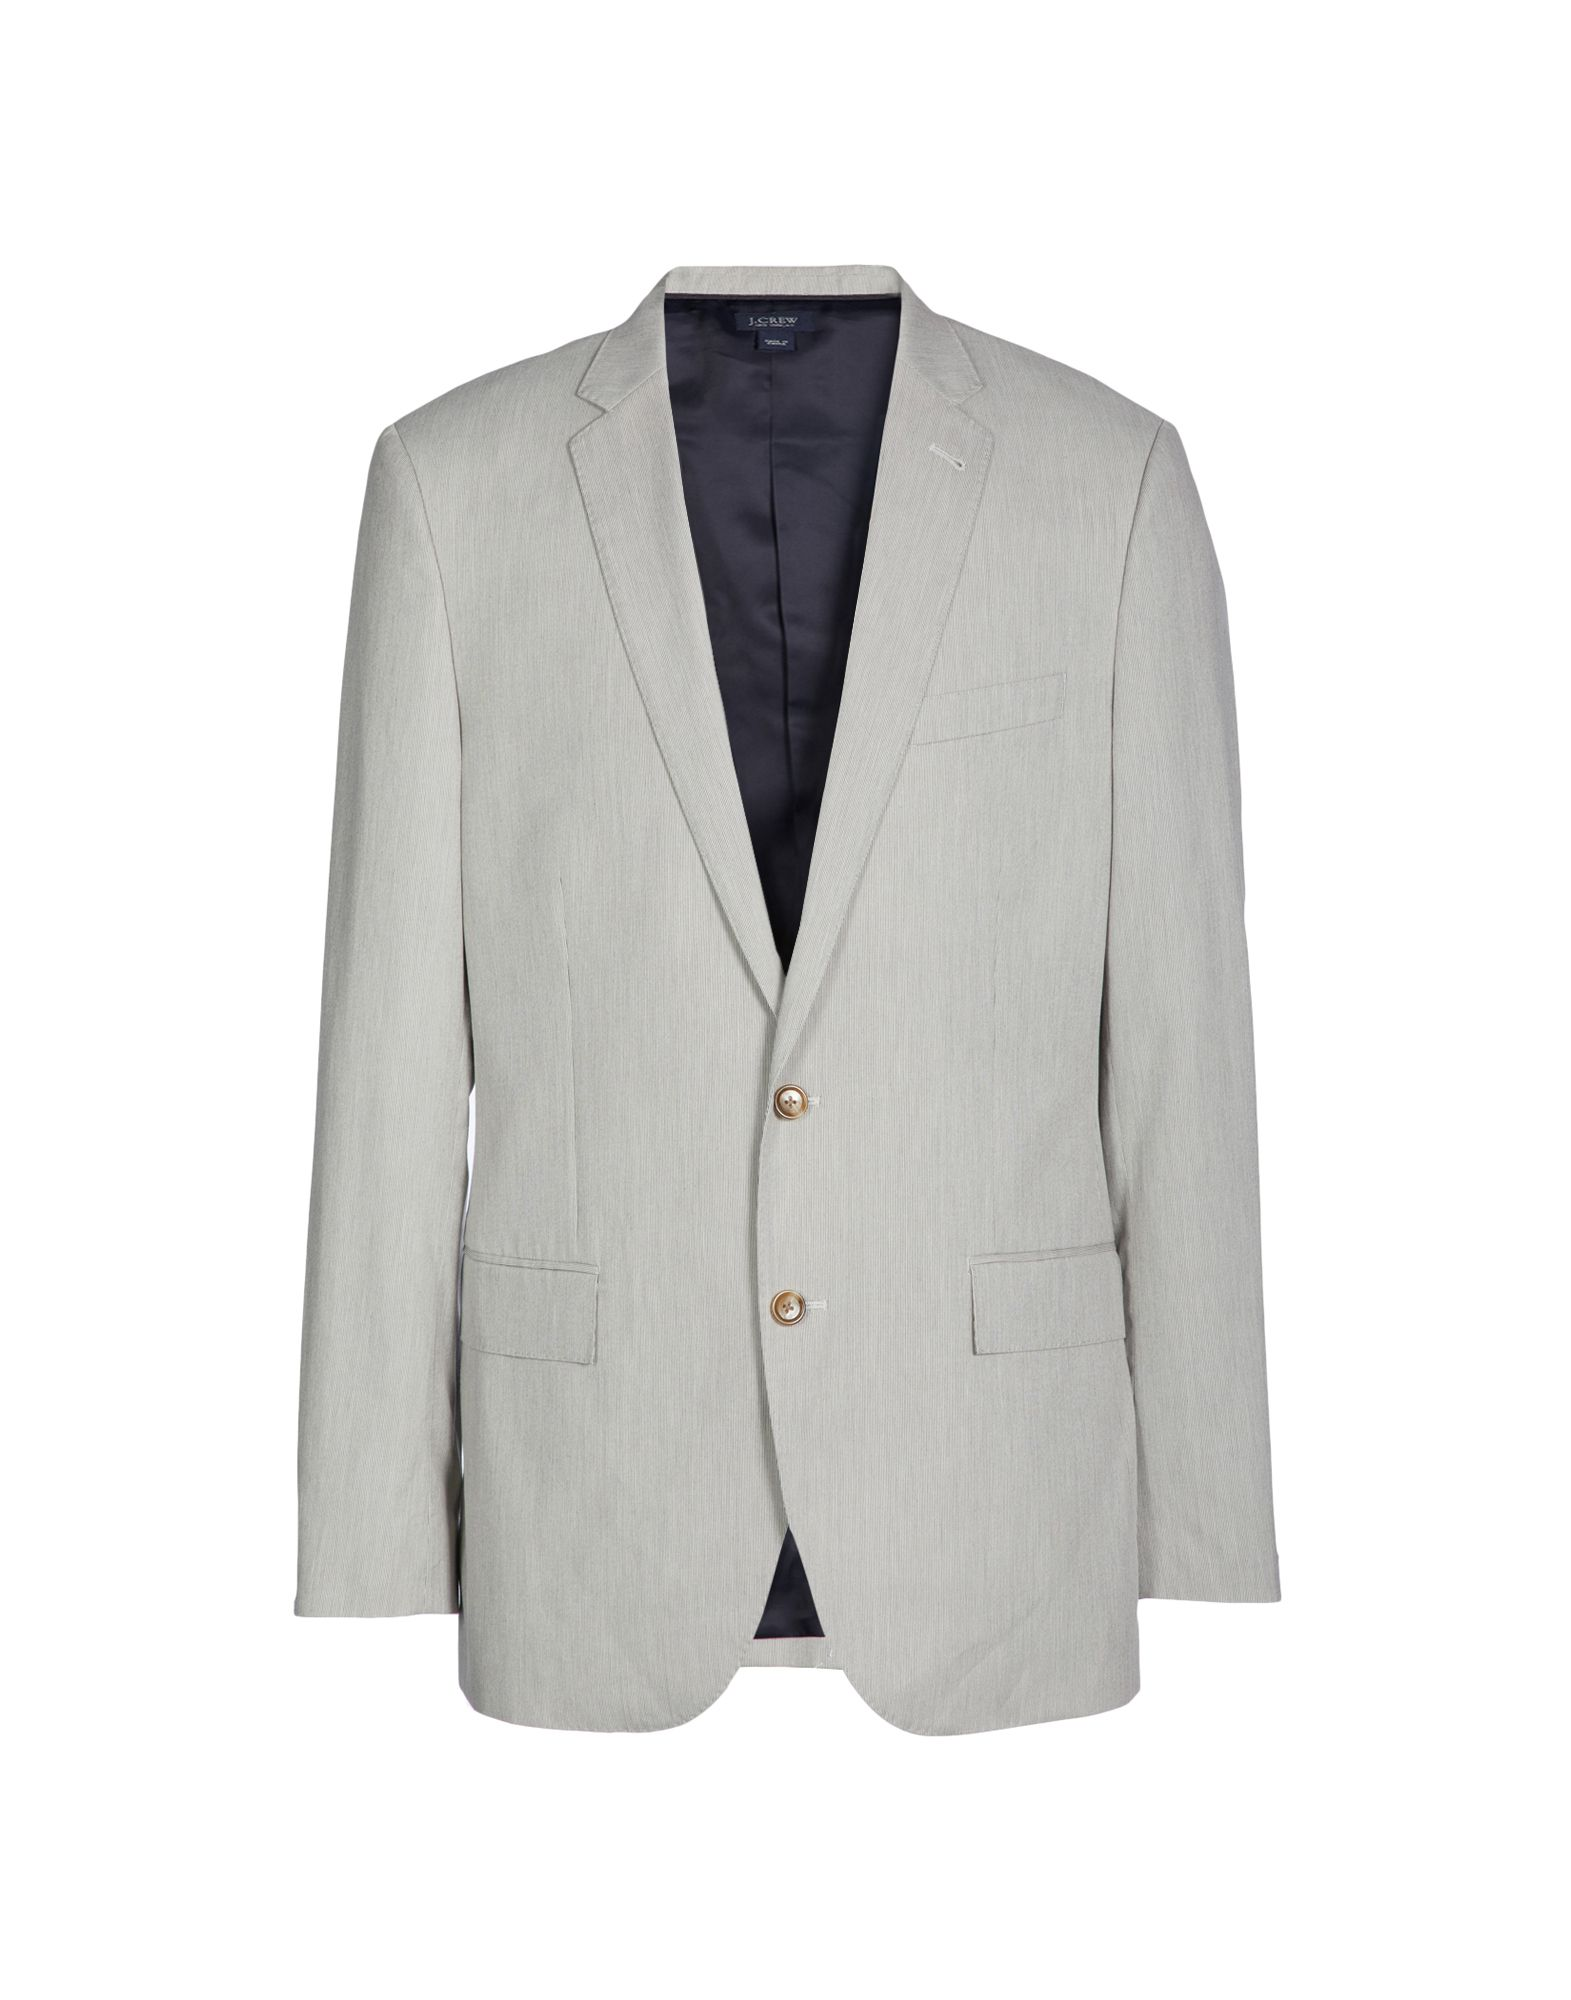 J.CREW Suit jackets. plain weave, single pocket, single chest pocket, single-breasted, fully lined, solid color, v-neck, two inside pockets, single-breasted jacket. 100% Cotton